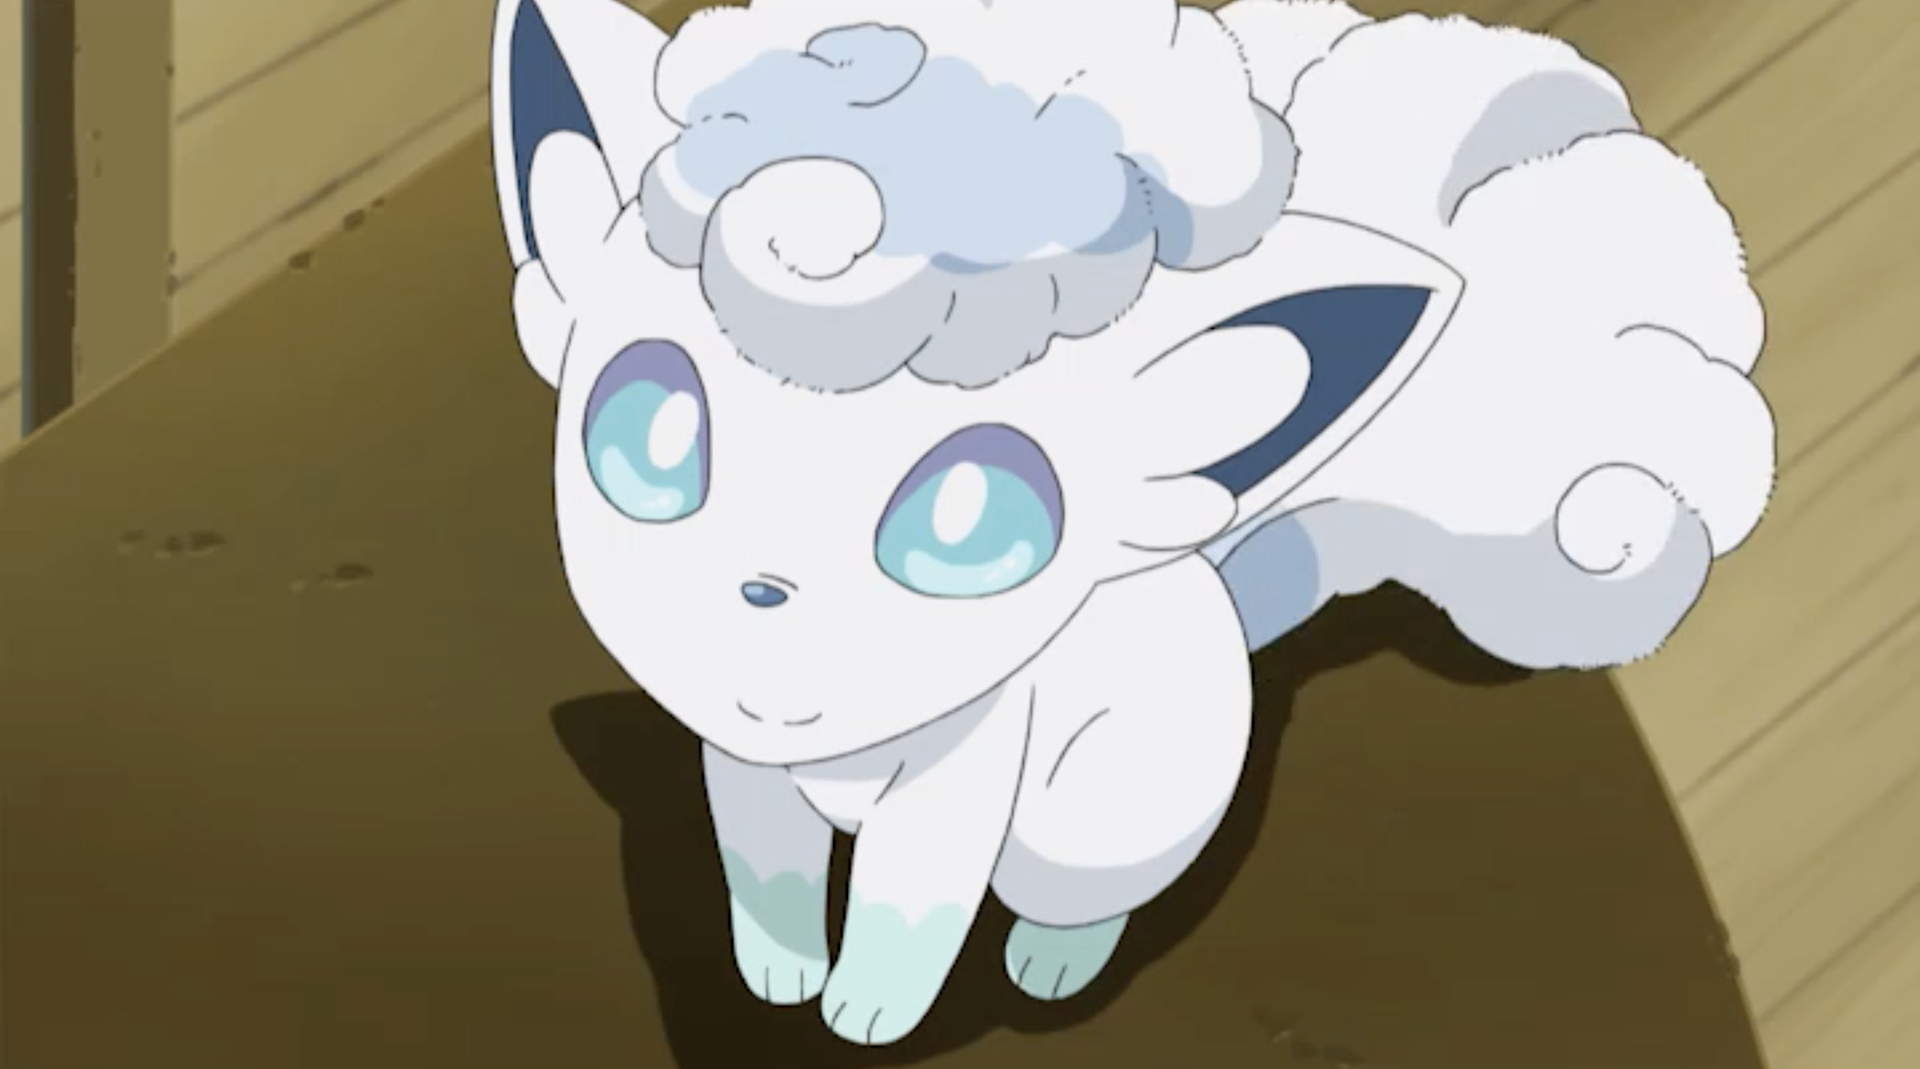 Snowy Pok 233 Mon Wiki Fandom Powered By Wikia